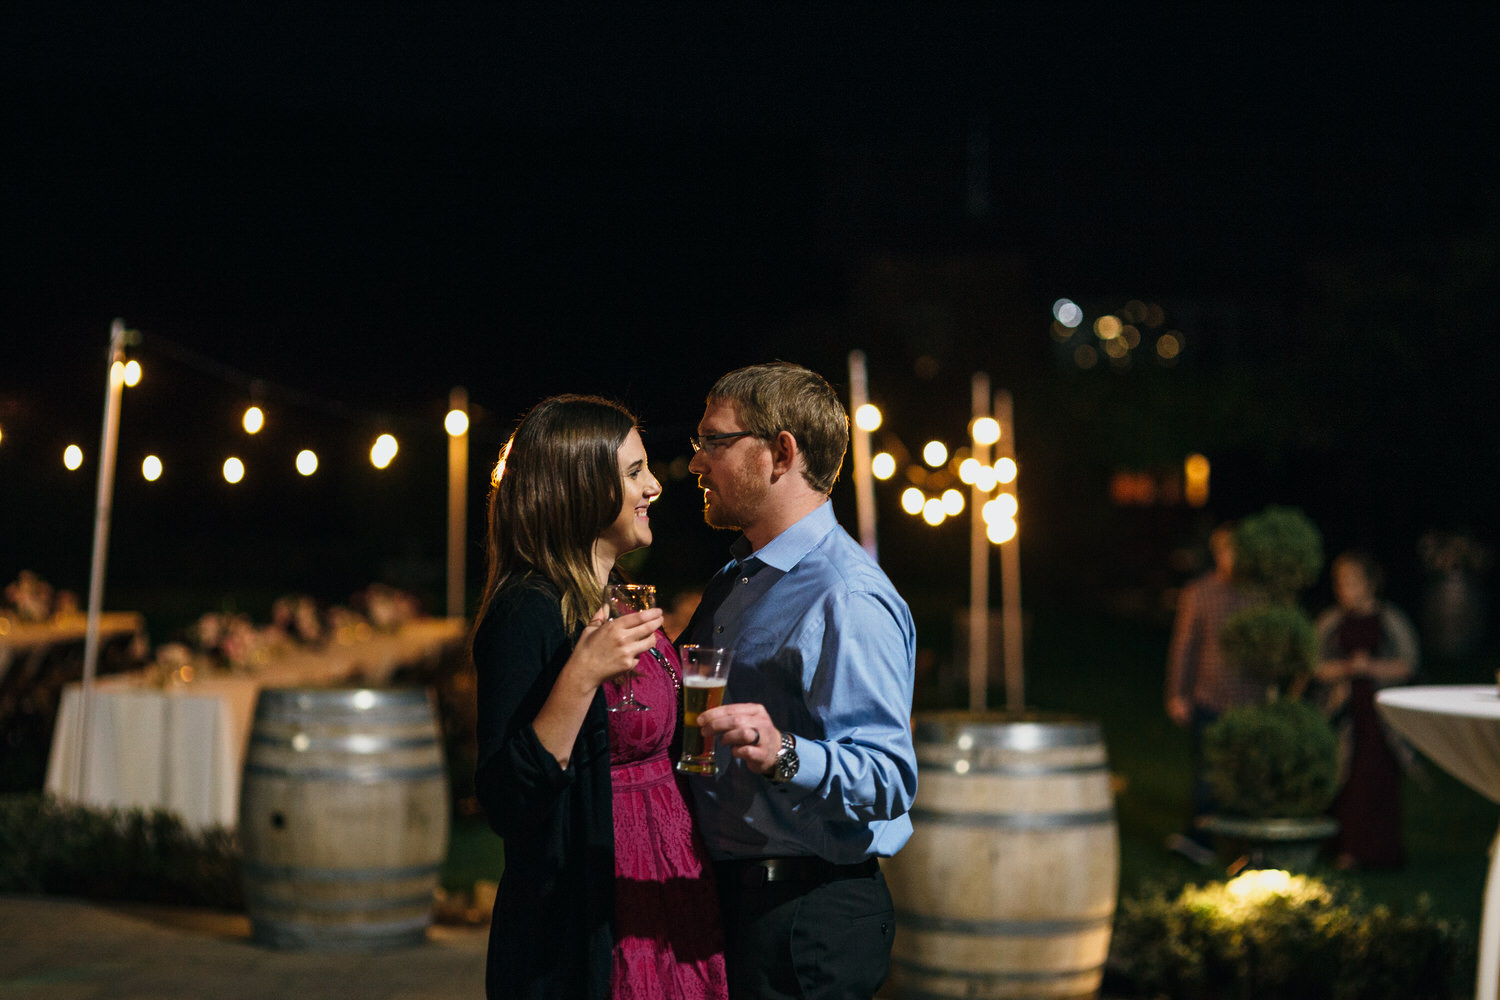 Beacon Hill Winery Wedding Willamette Valley Oregon 124.JPG